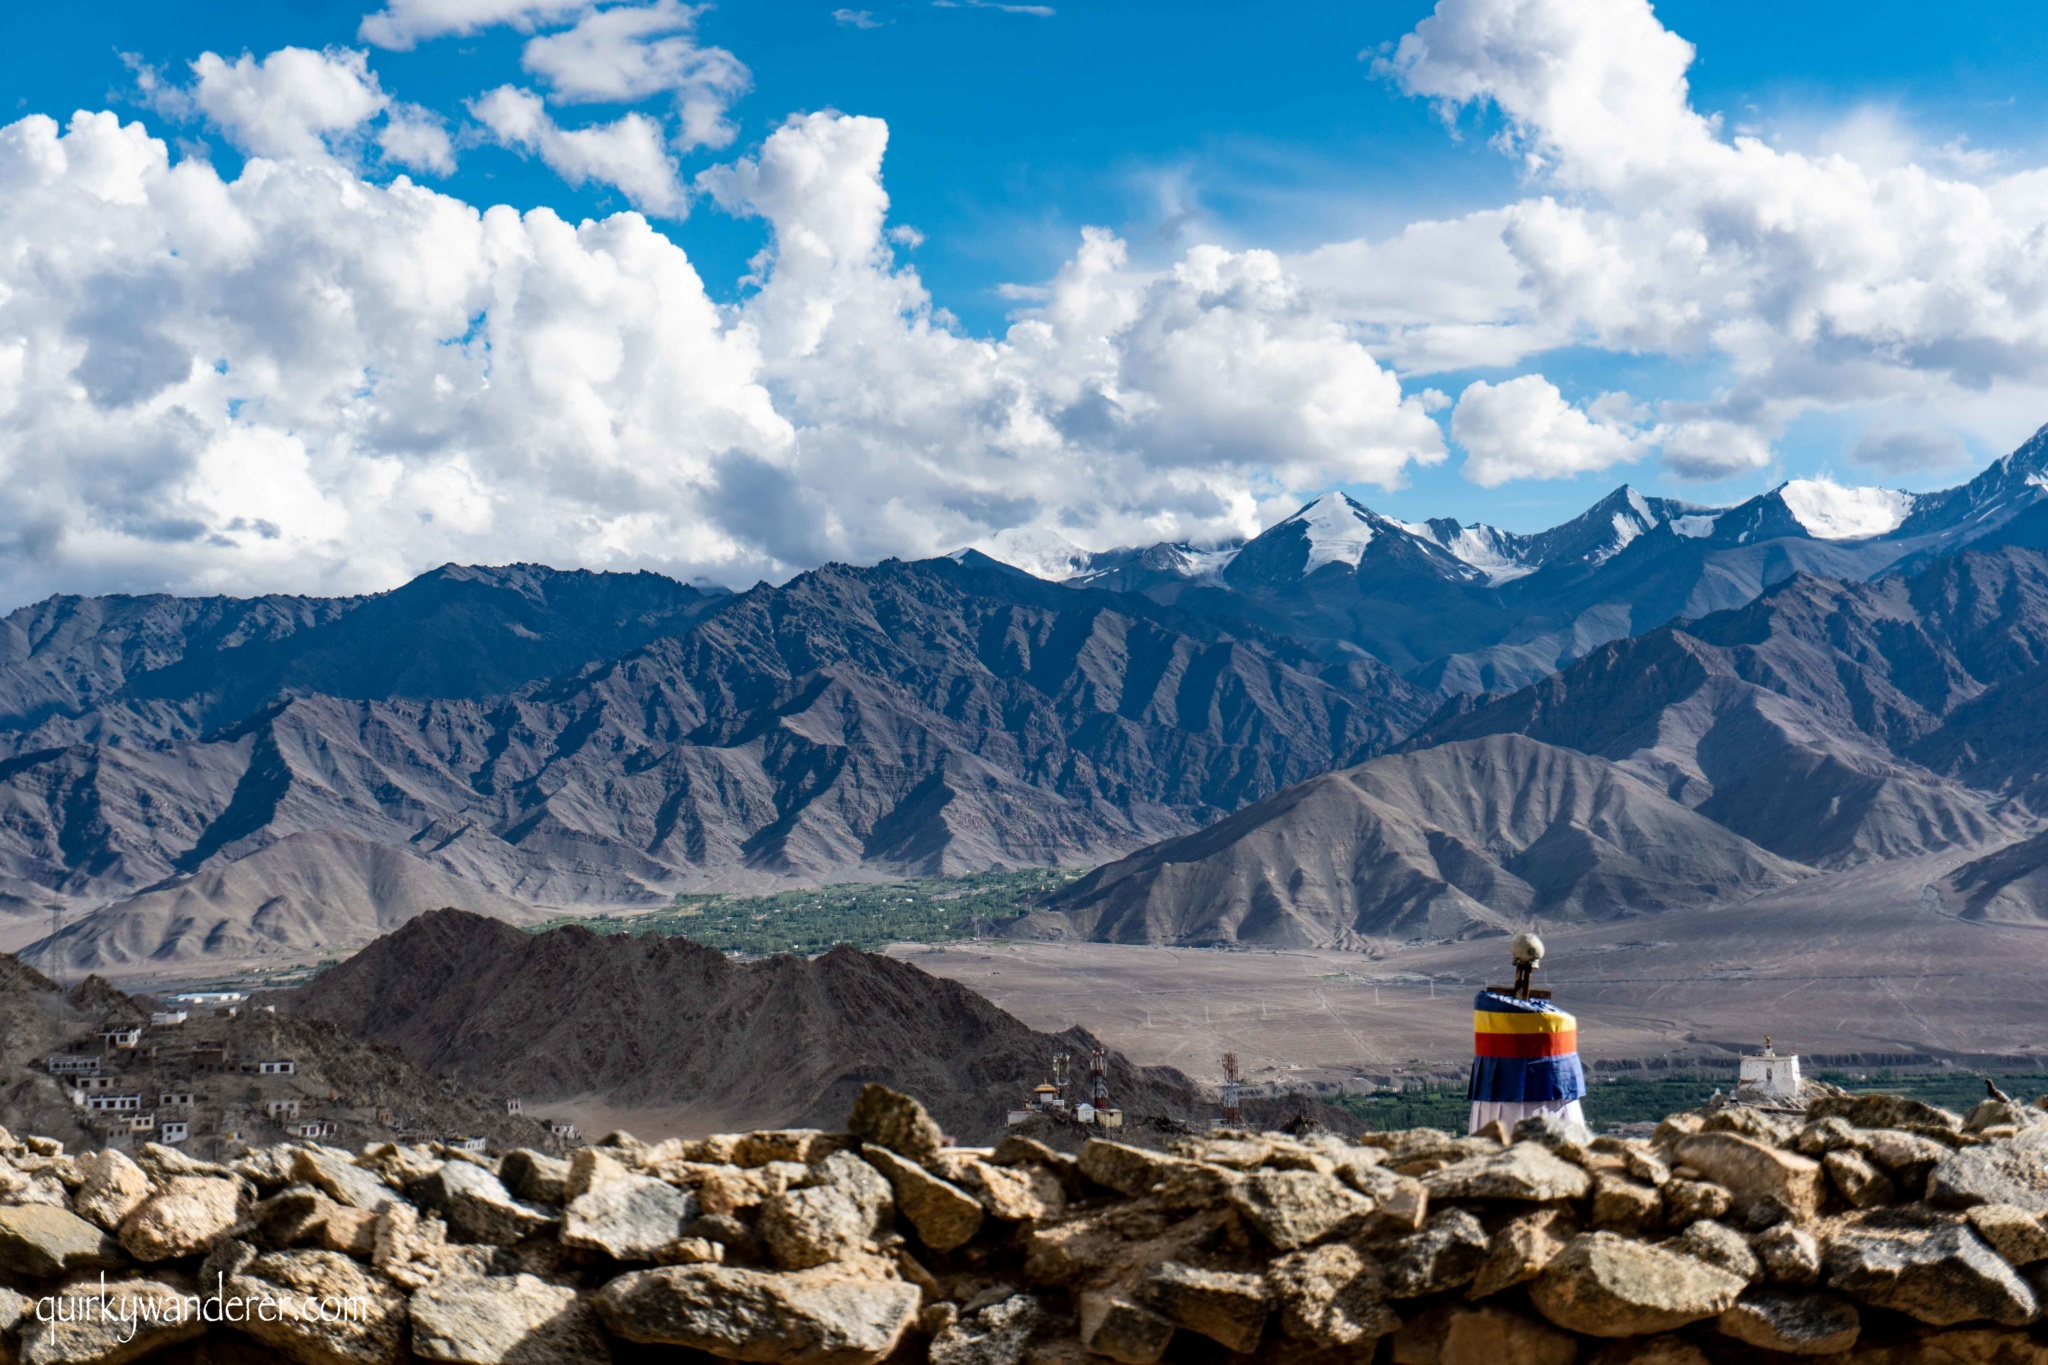 Best views of Leh city